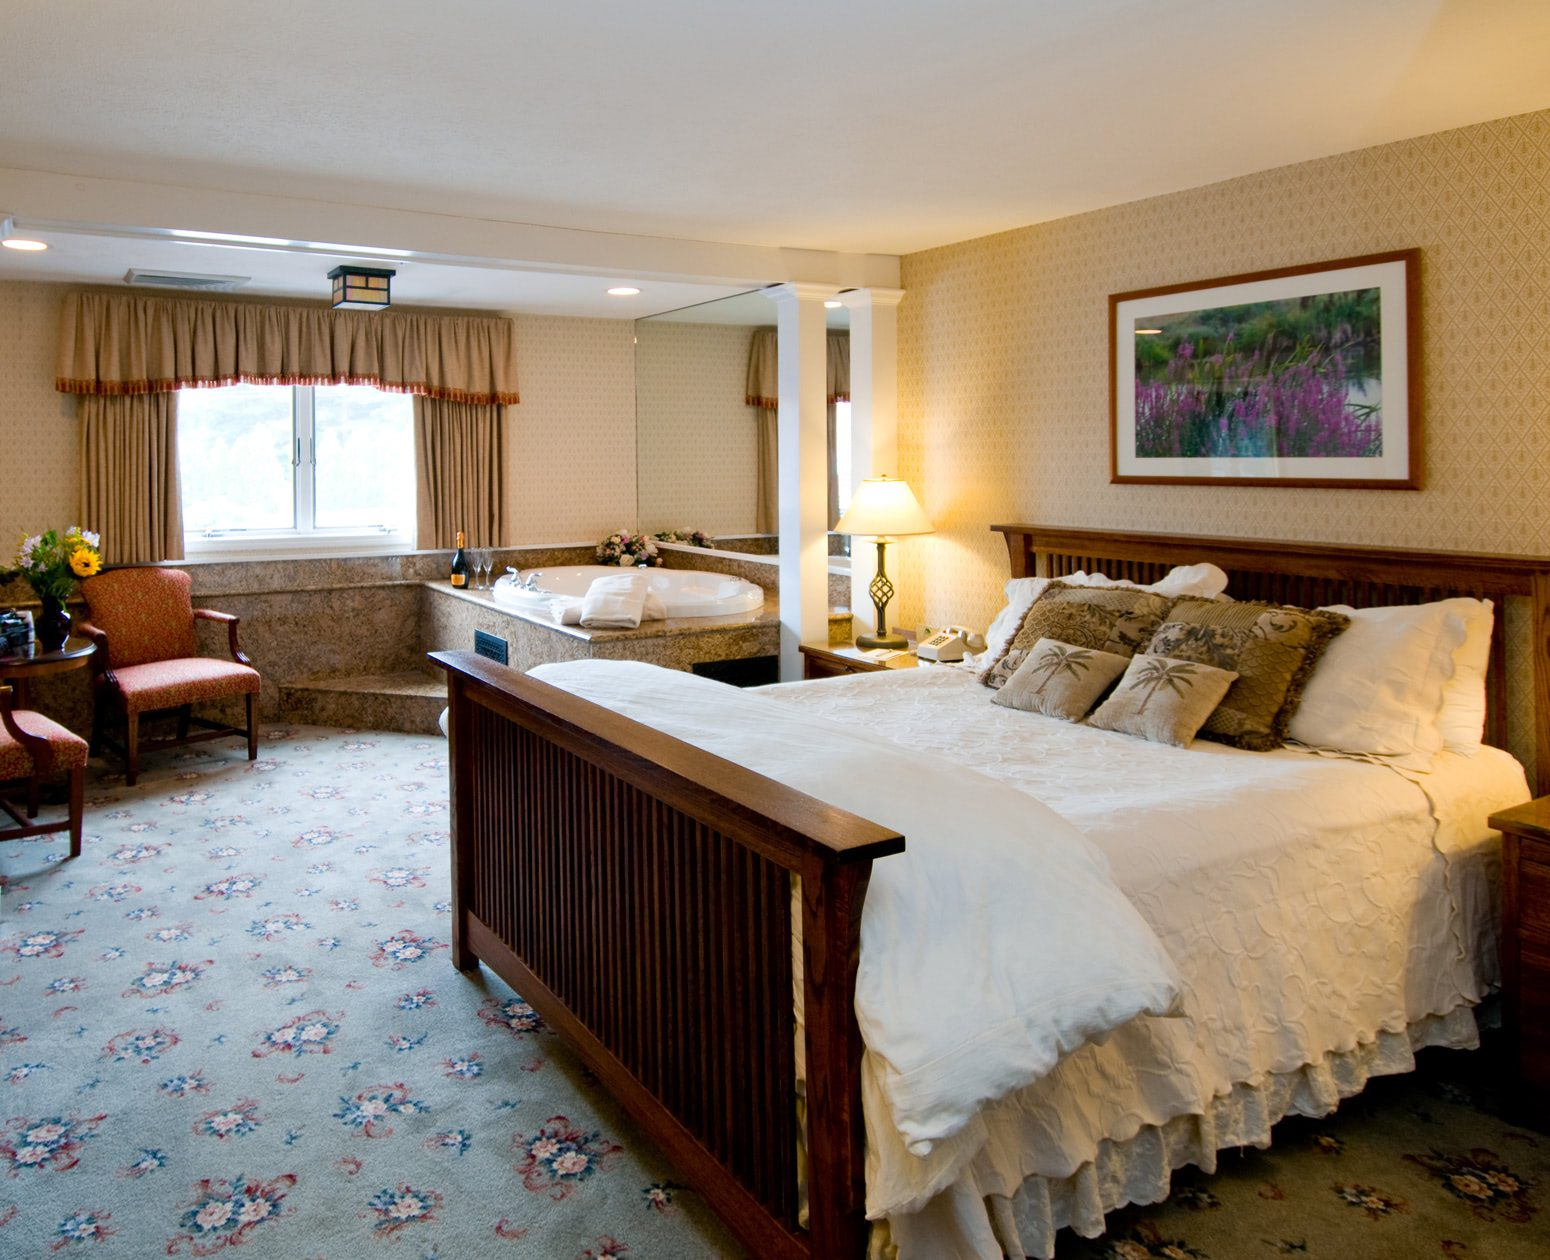 maine best camden lodging and templates hotel breakfast bed camdenmaine for inn strong riverhouse